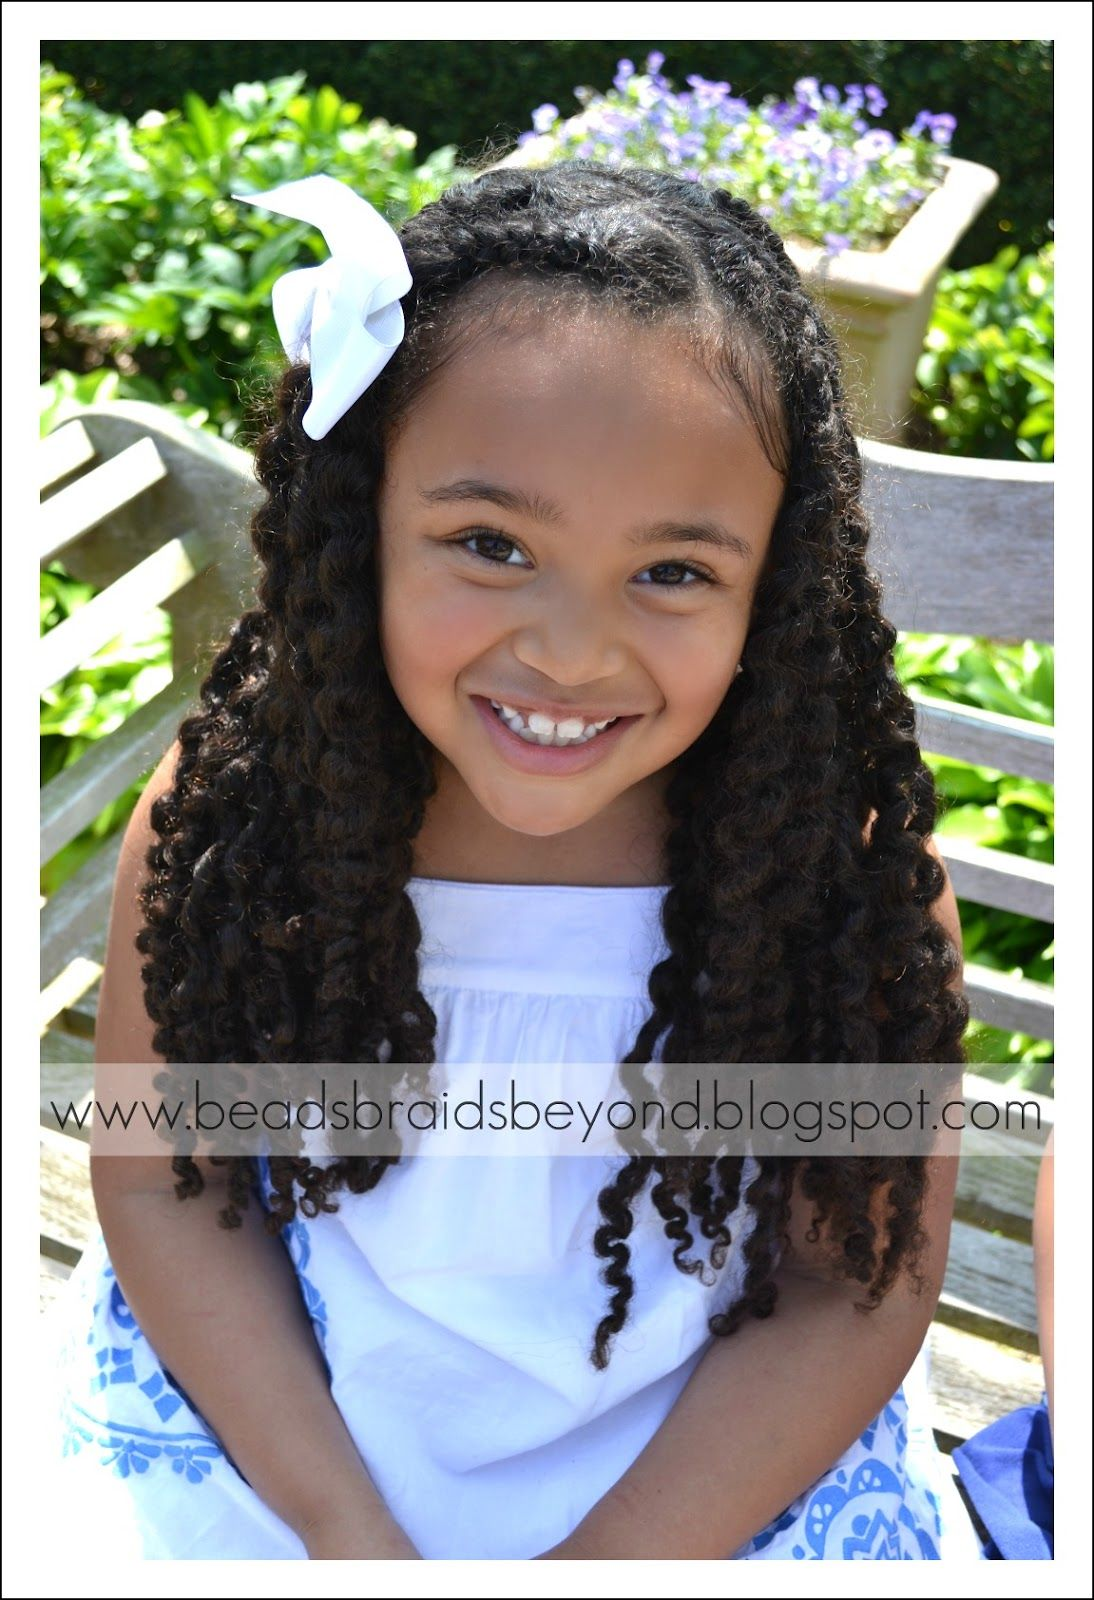 Hairstyles For Little Kids Beads Braids And Beyond Little Girls Natural Hairstyles Twist